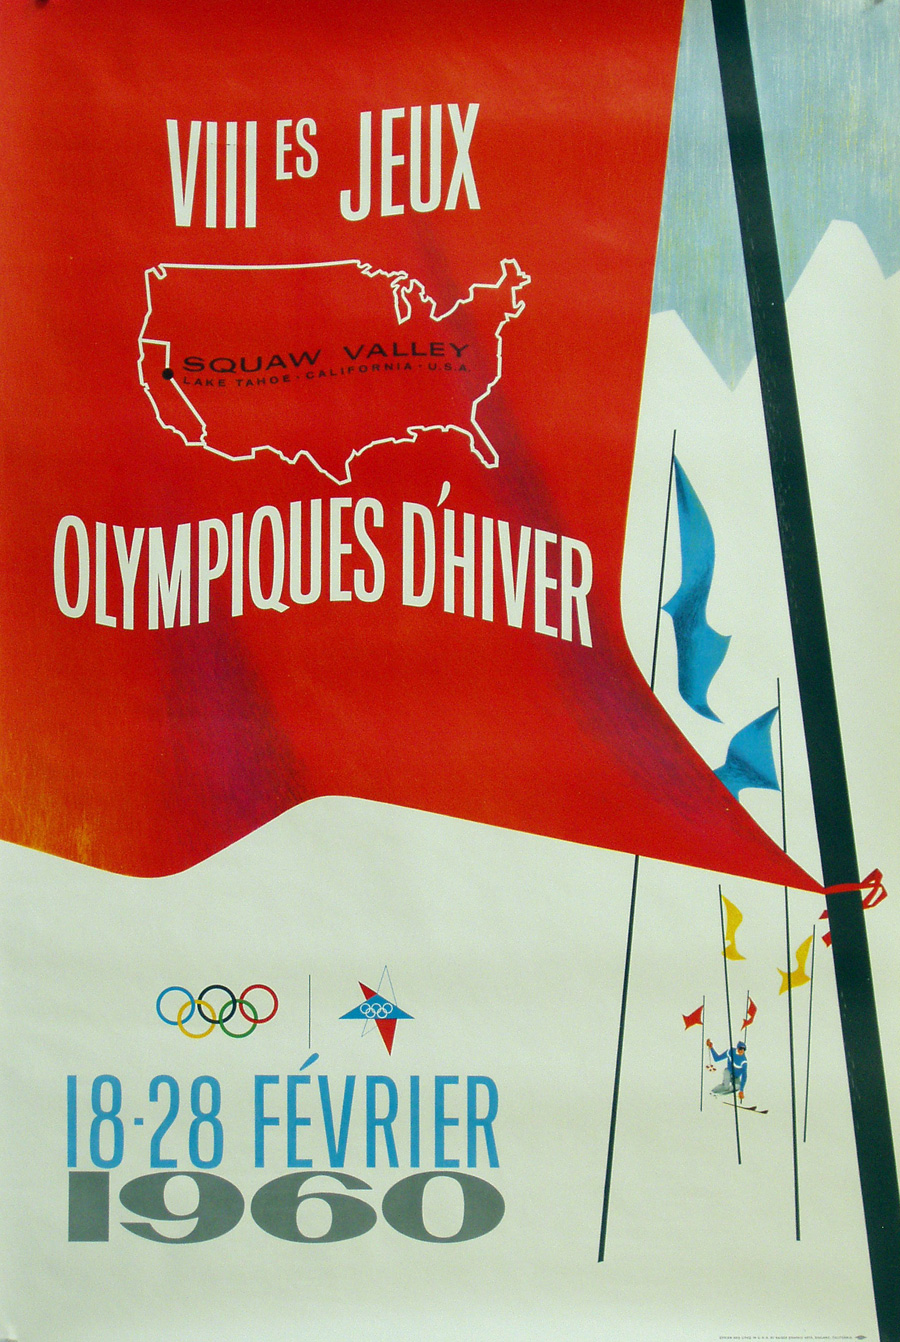 1960-VIIIes-Jeux-Olympiques-DHiver